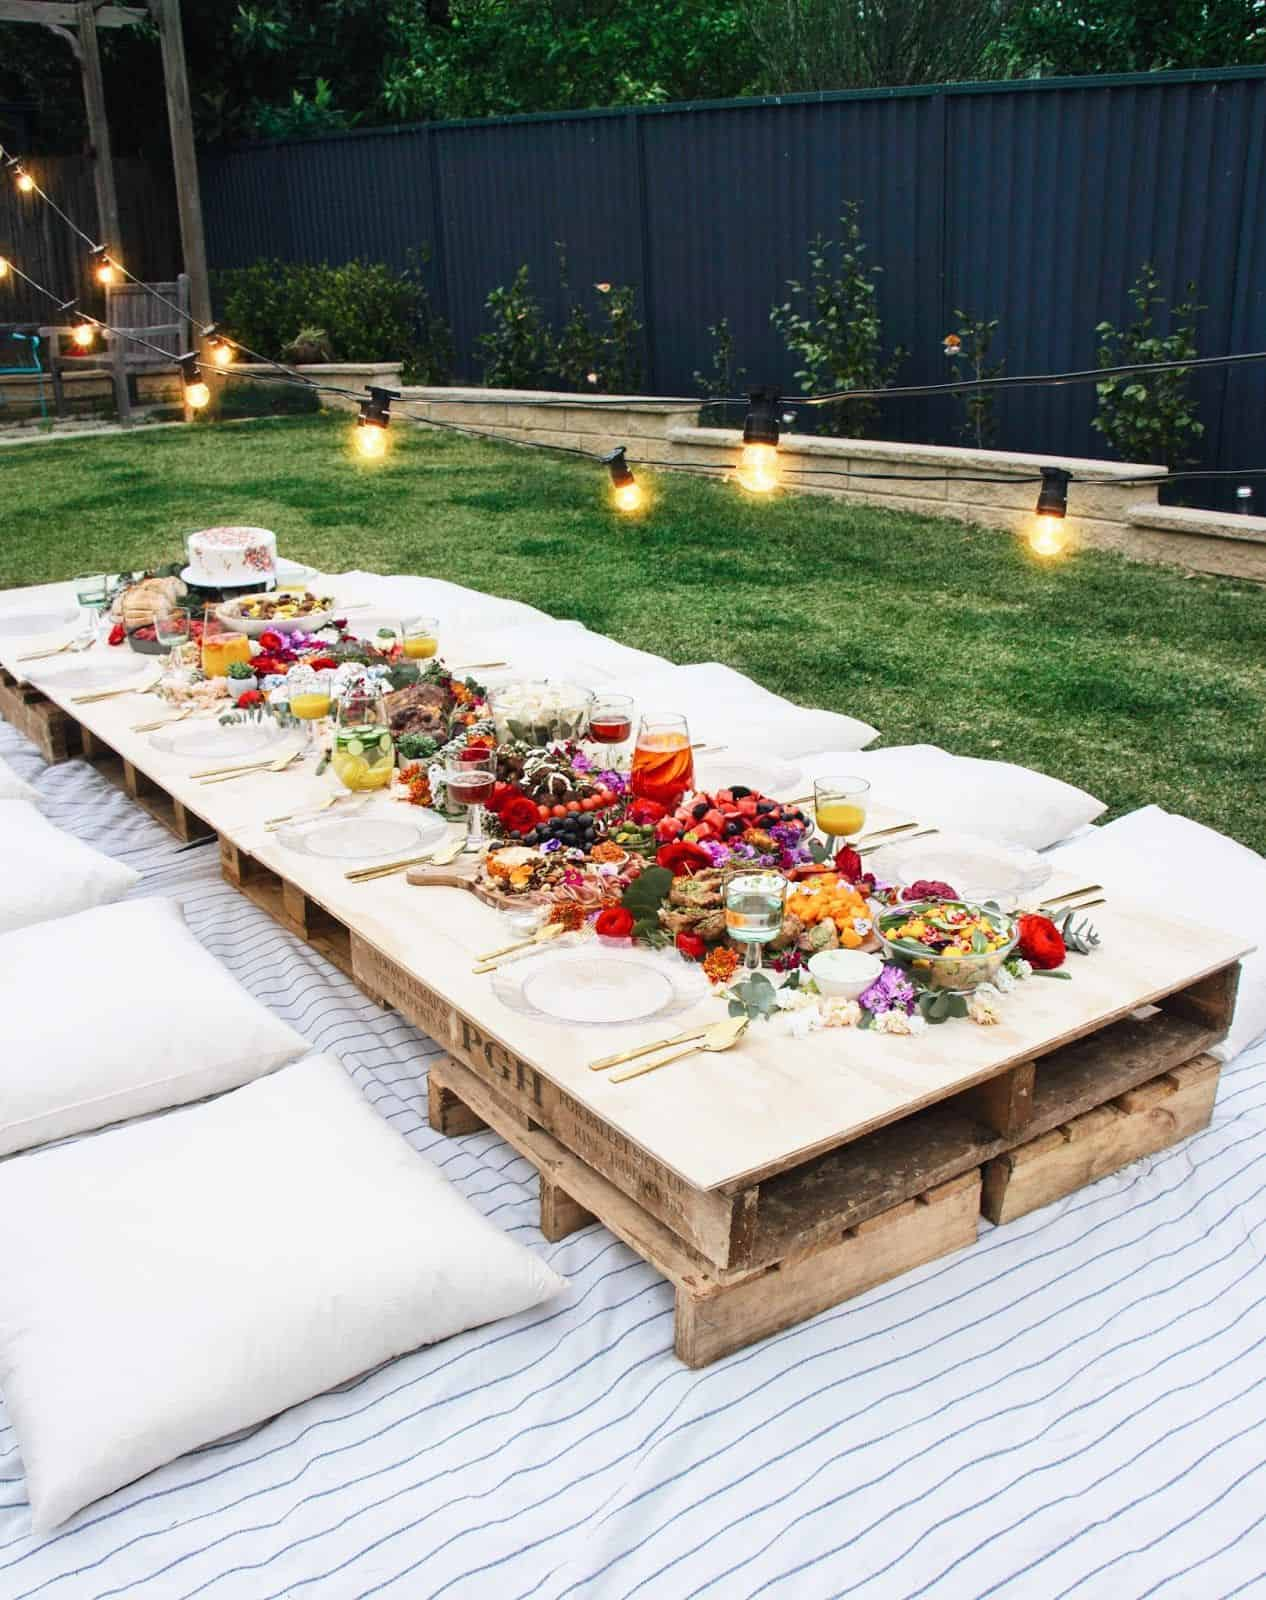 Charming extra table Embracing Summer Garden Party Ideas To Invite People Happiness In A Warmer Weather